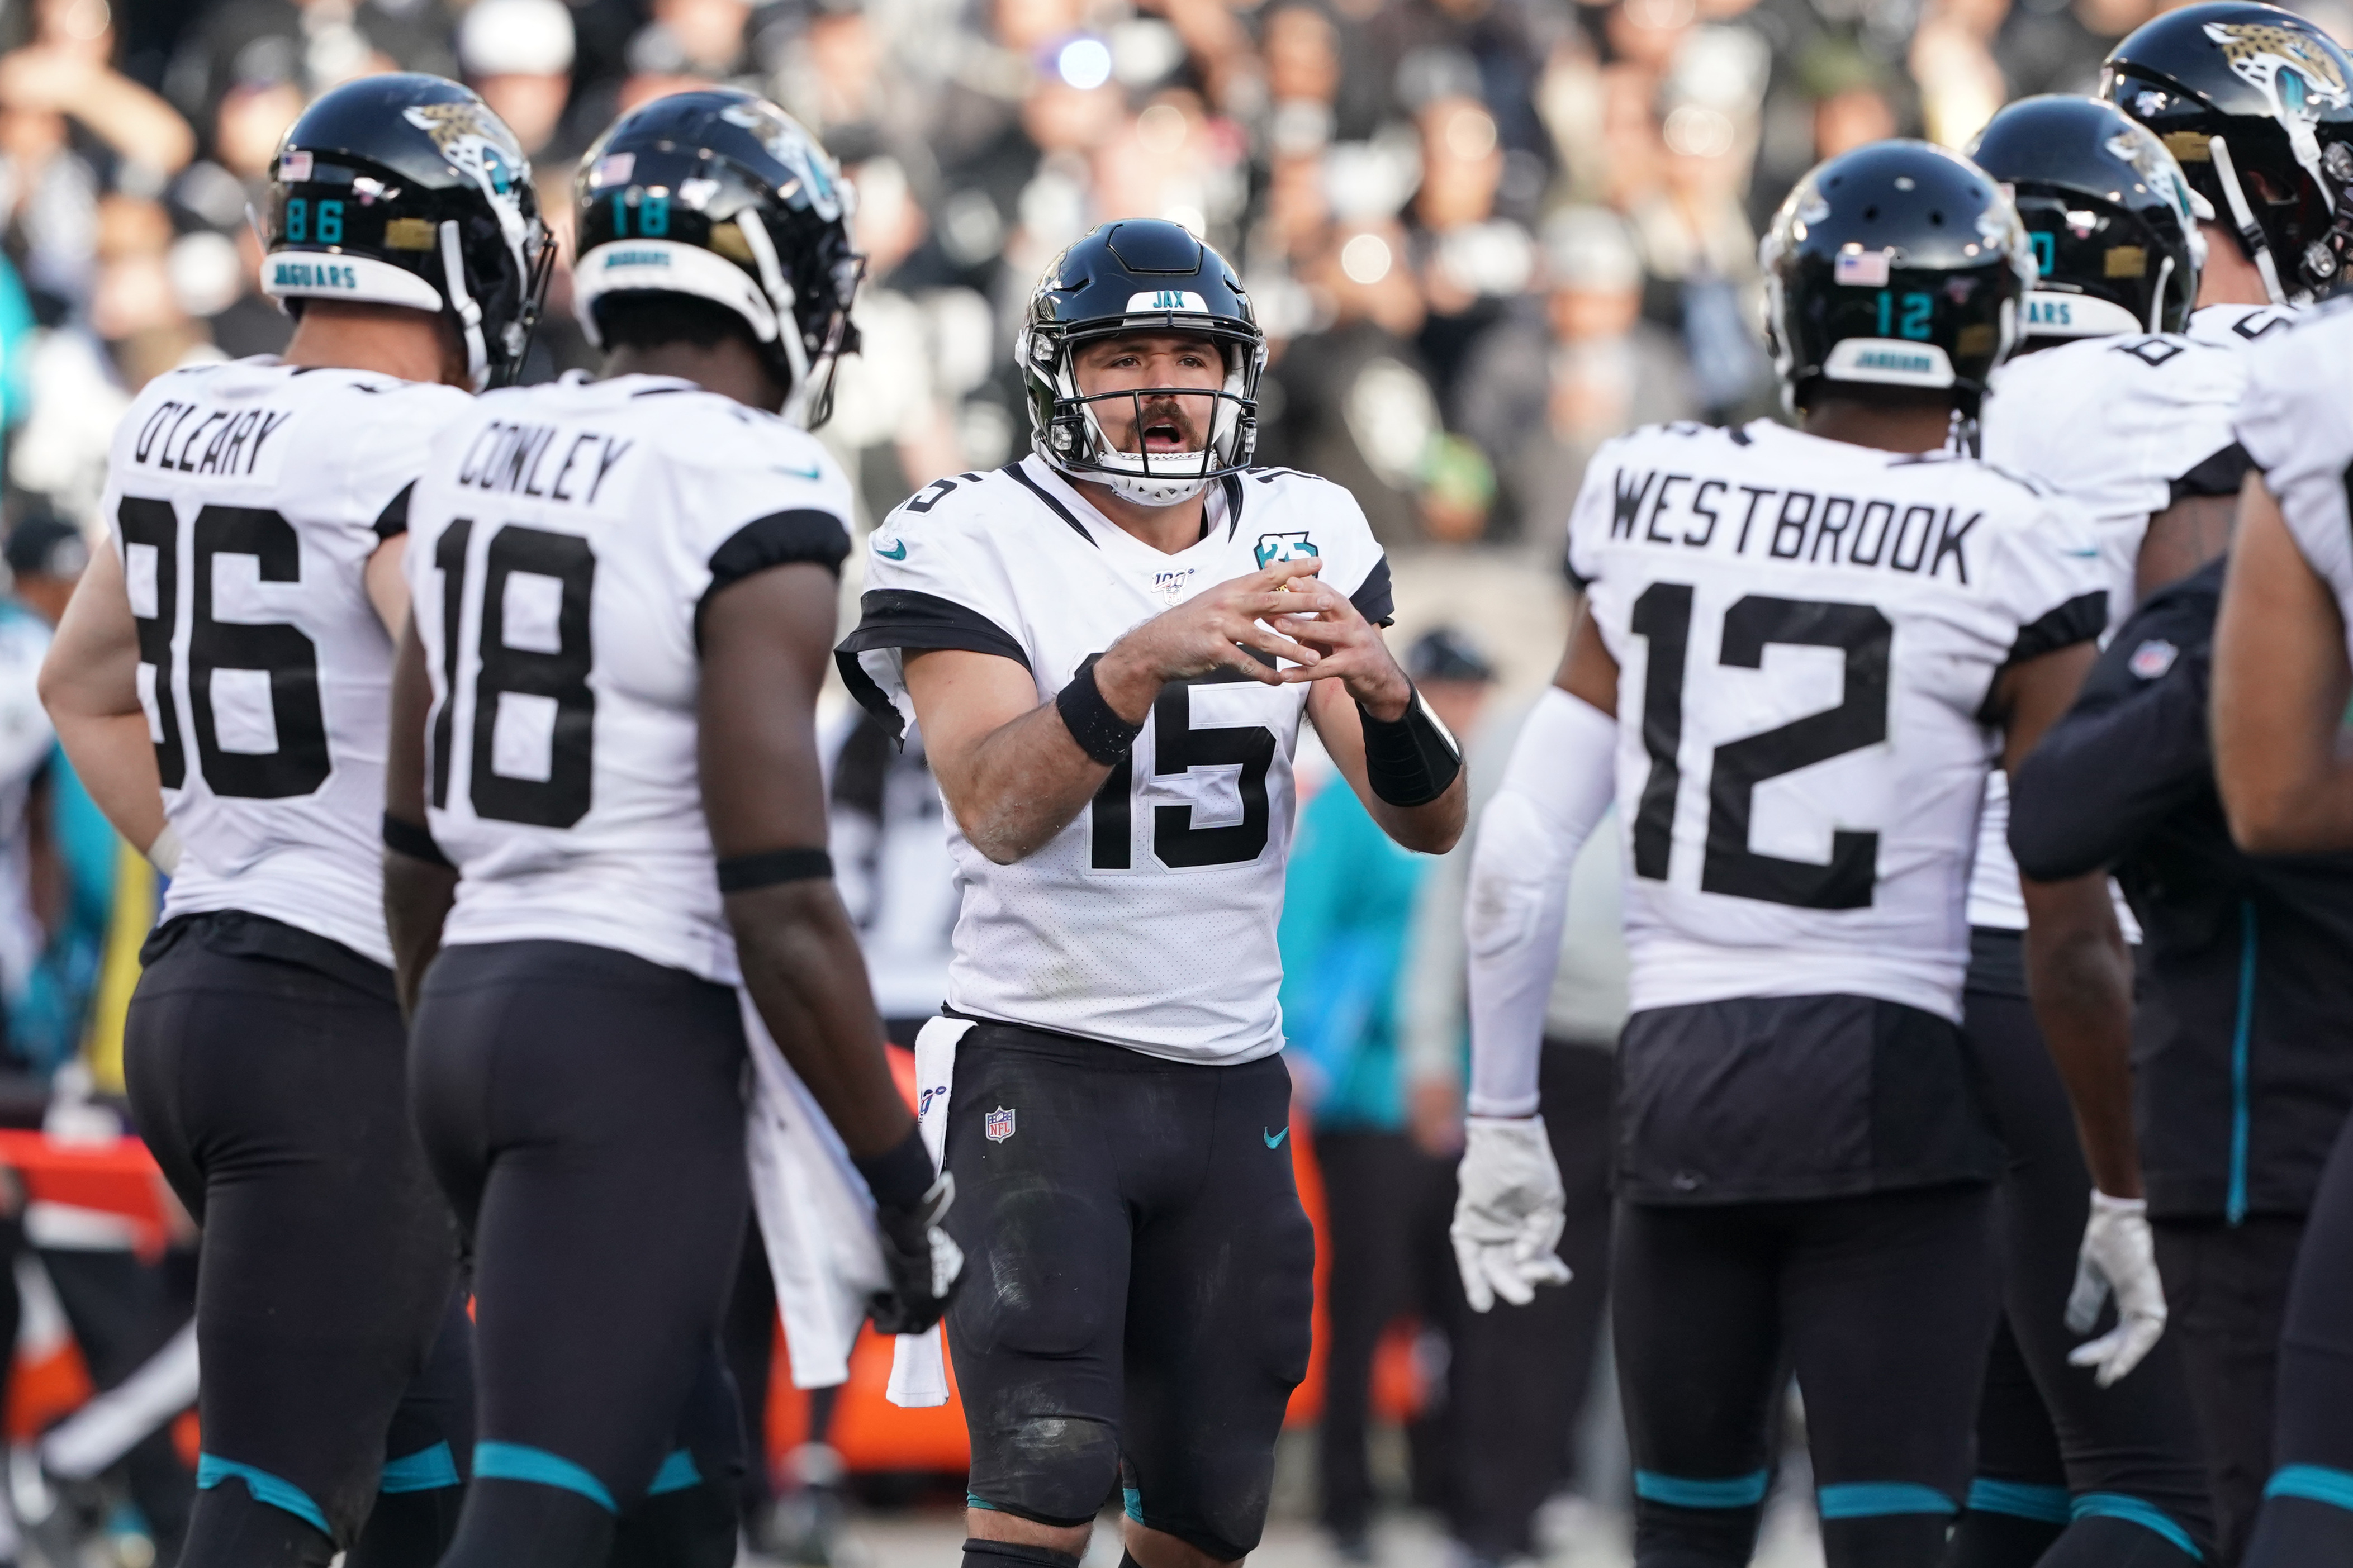 NFL: Jacksonville Jaguars at Oakland Raiders